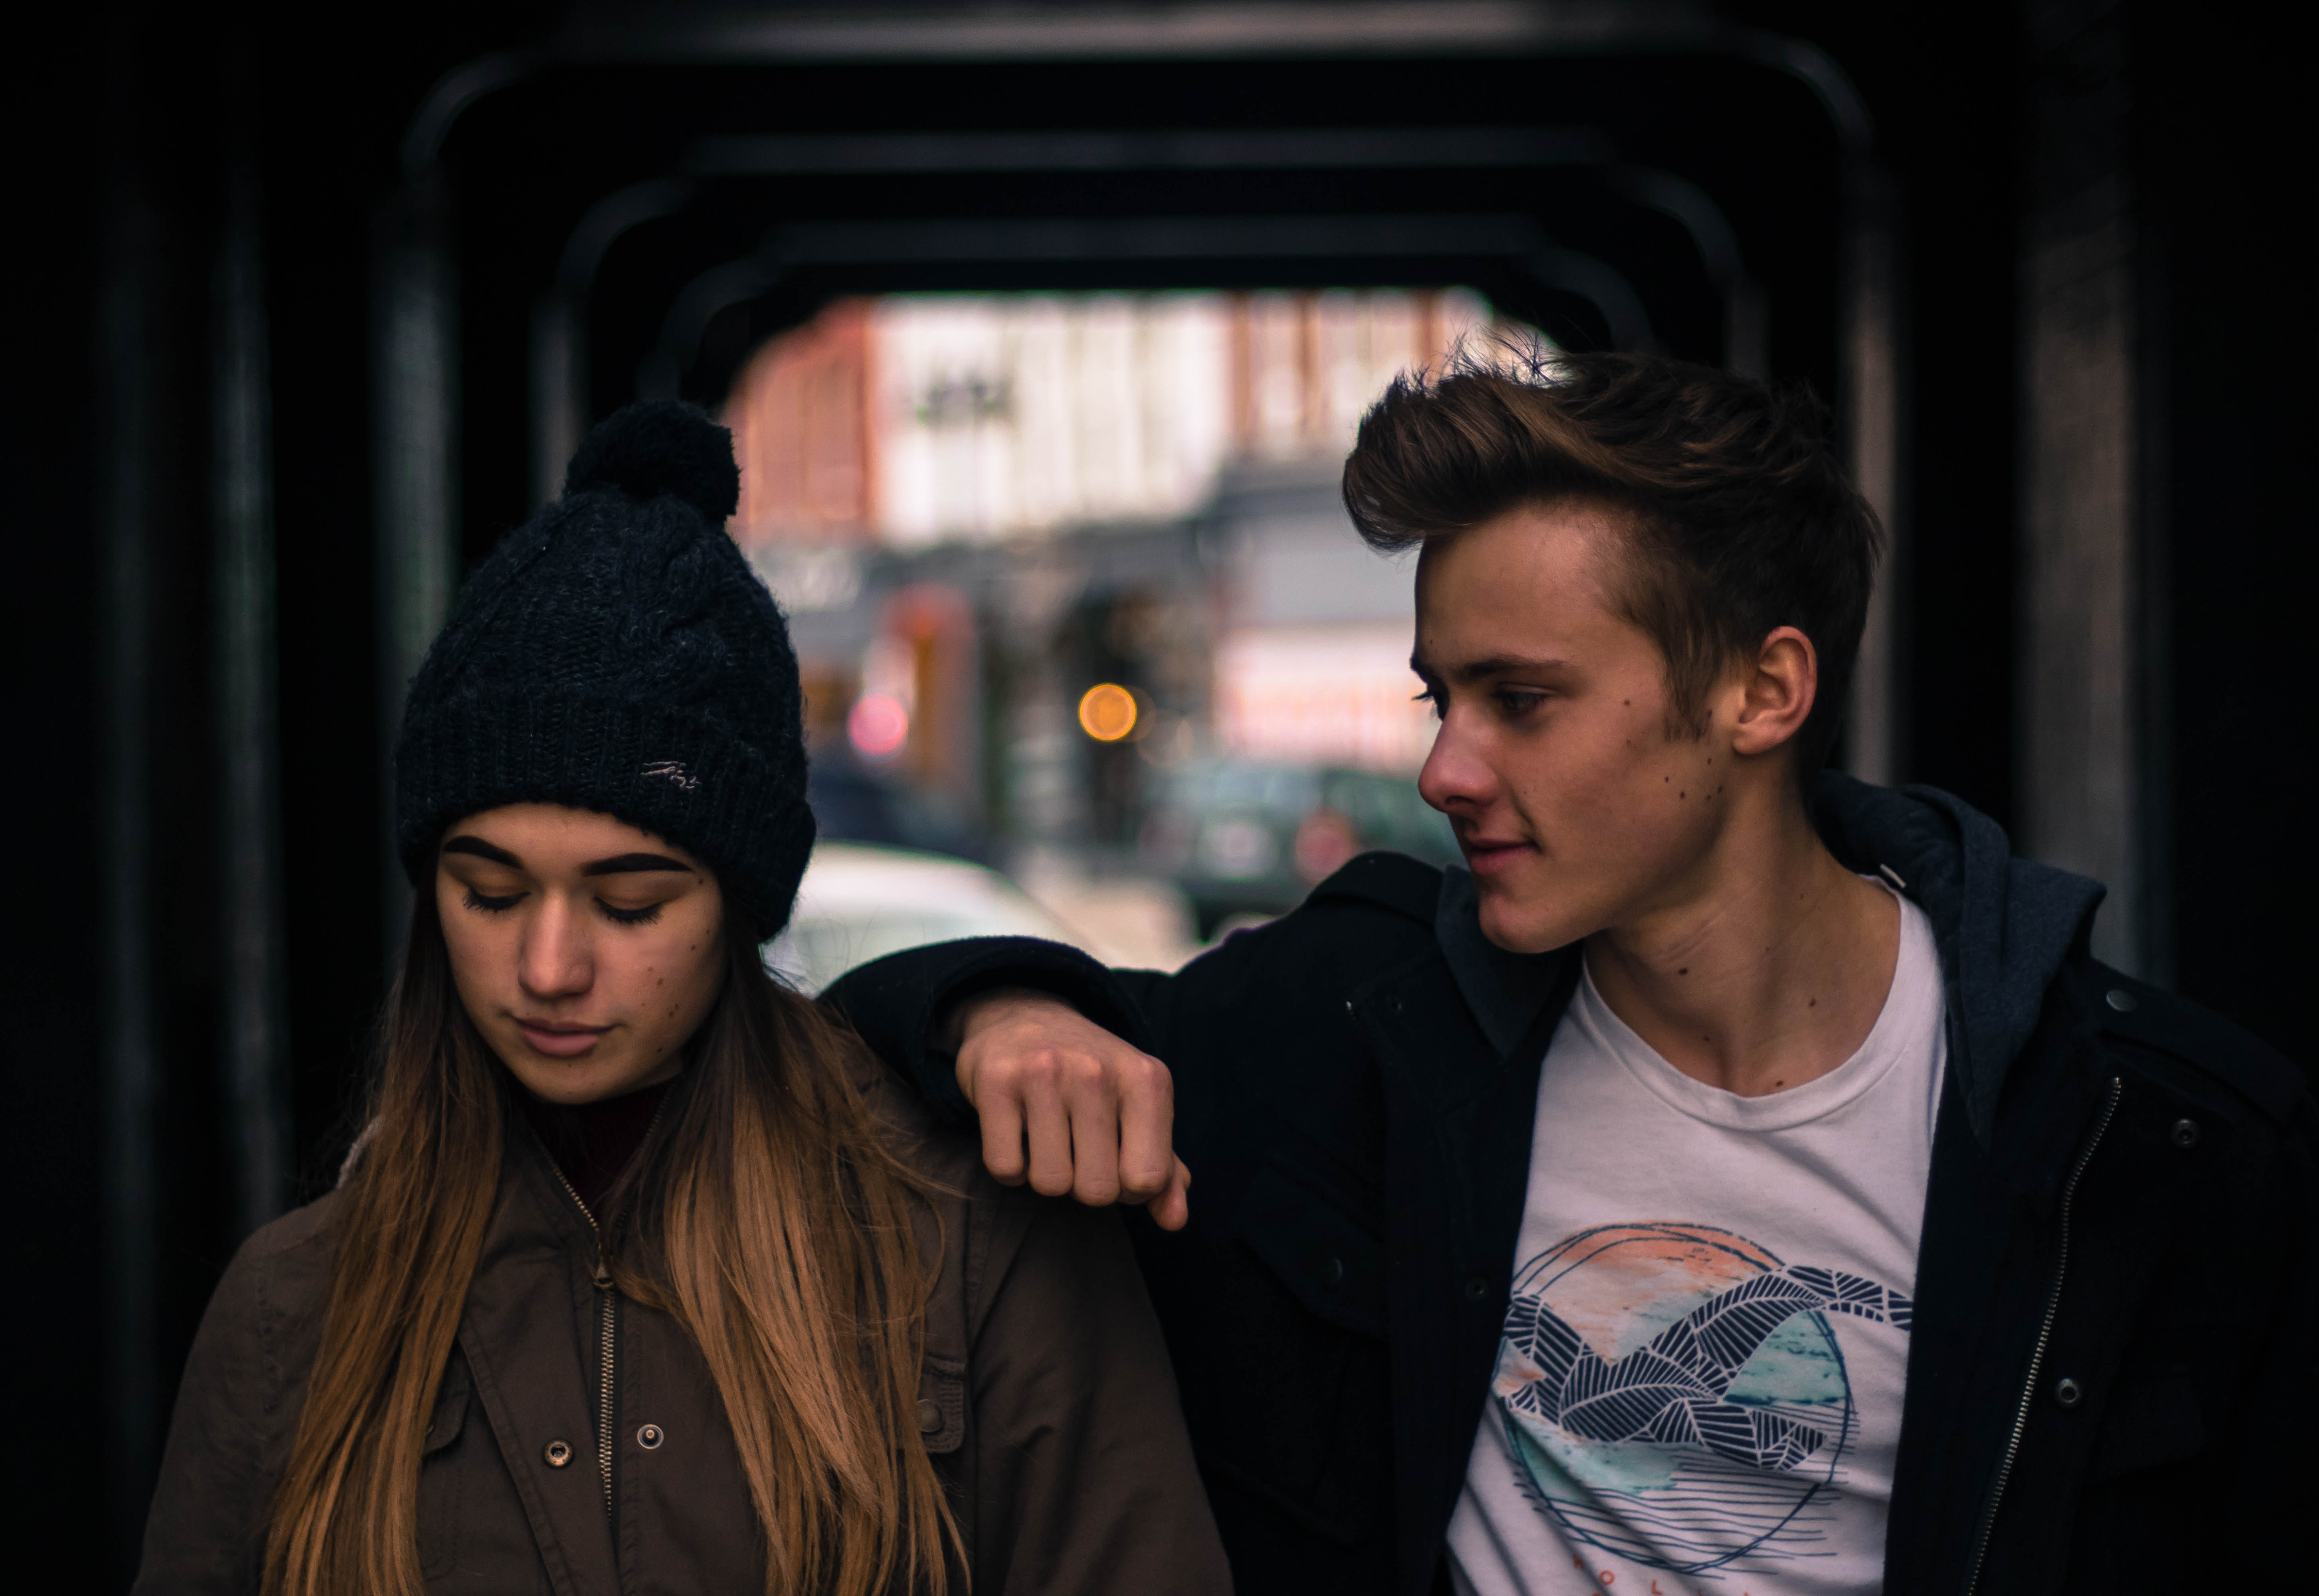 Young Couple in City at Night · Free Stock Photo